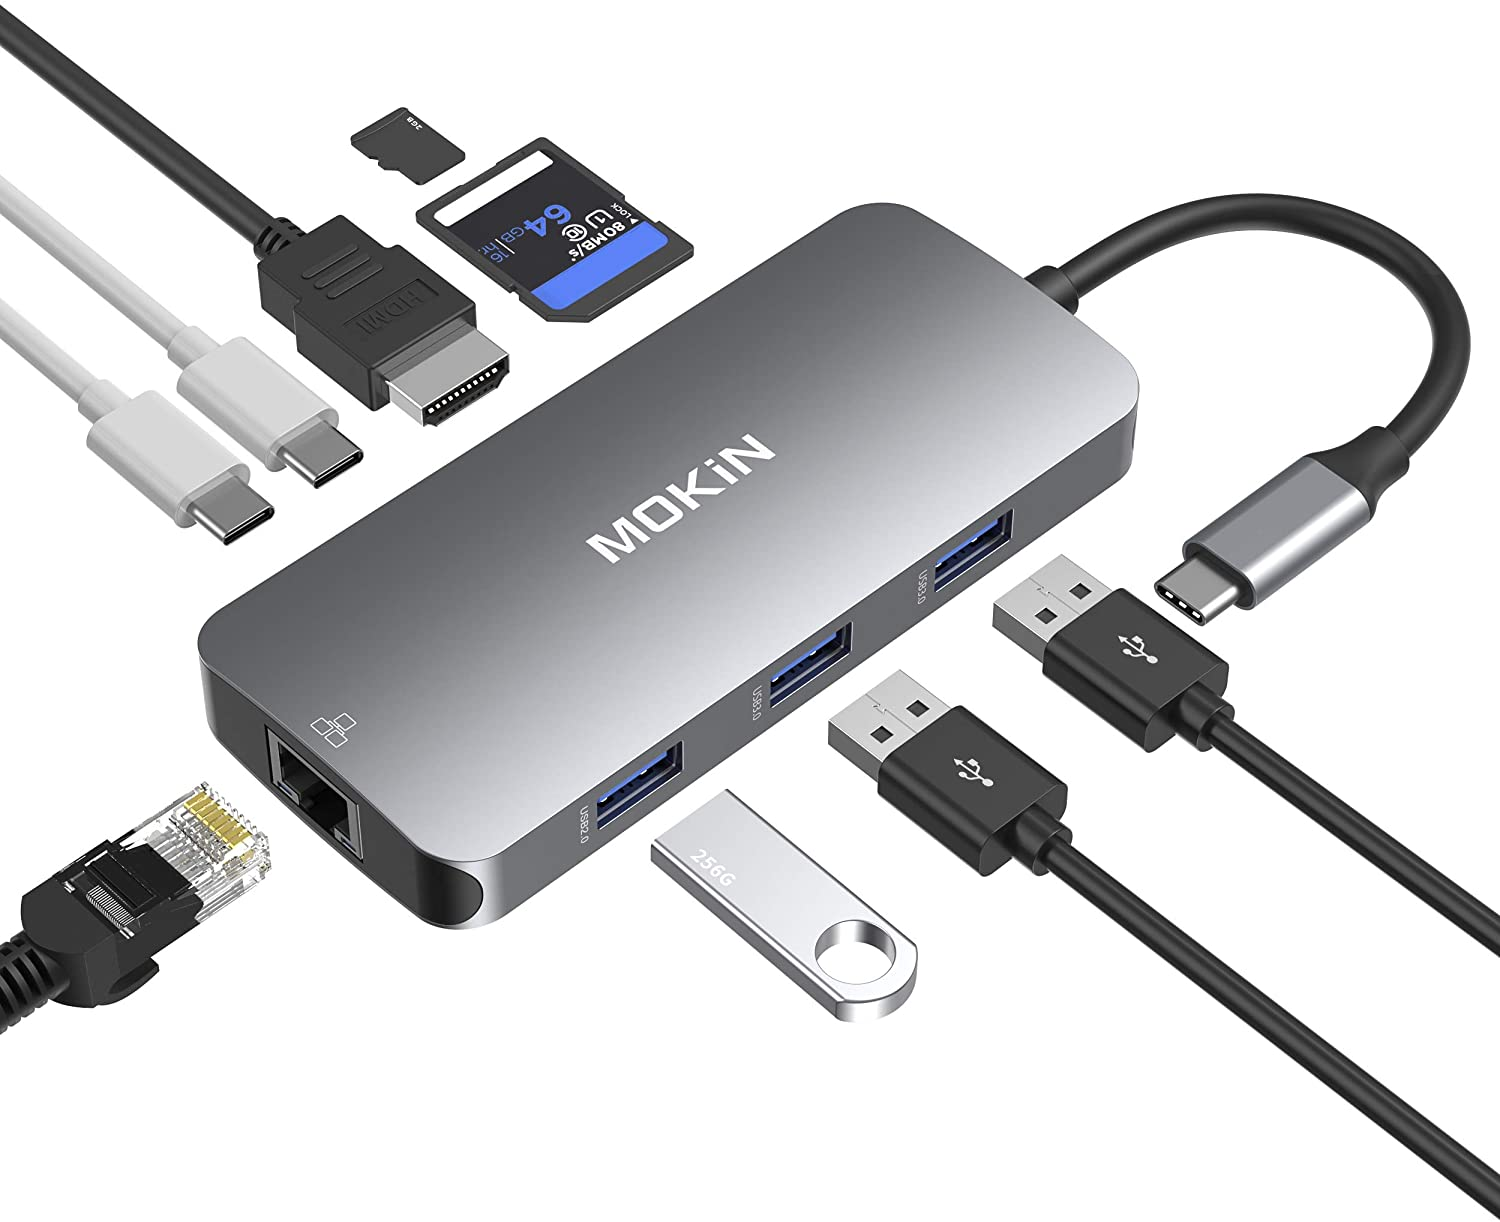 USB C Adapters for MacBook Pro/Air,Mac Dongle with 3 USB Port,USB C to HDMI, USB C to RJ45 Ethernet,MOKiN 9 in 1 USB C to HDMI Adapter,100W Pd Charging, USB C to SD/TF Card Reader USB C Hub